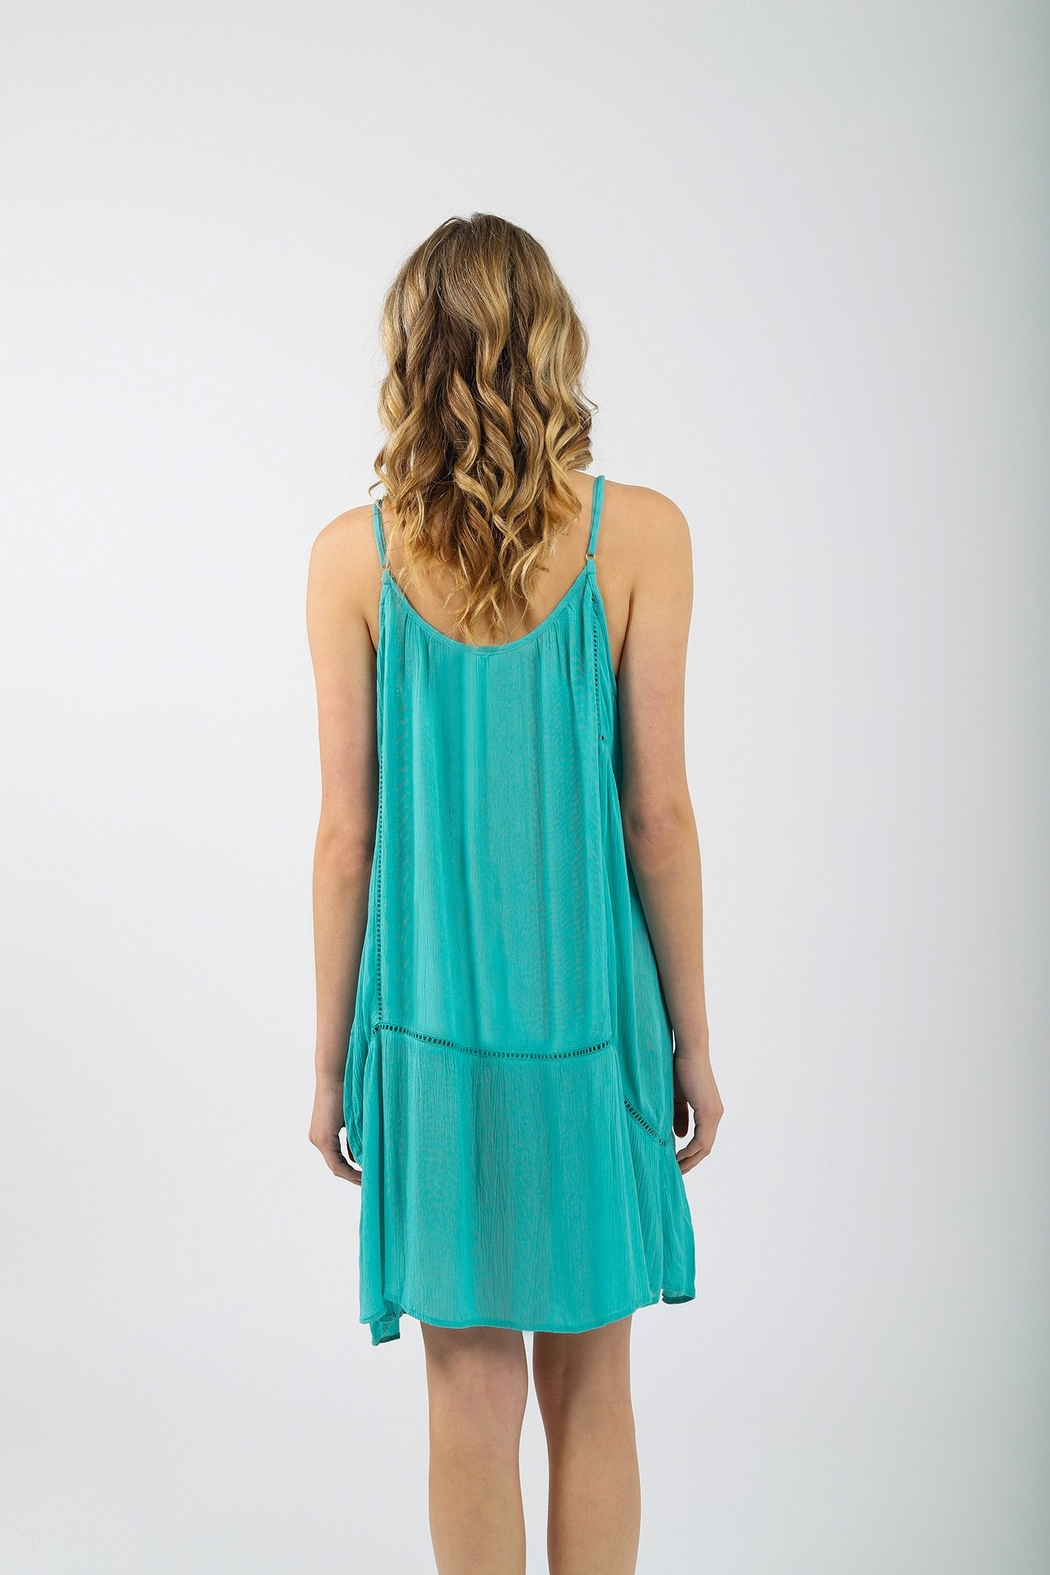 Koy Resort Miami Strappy Button Up Dress - Side Cropped Image